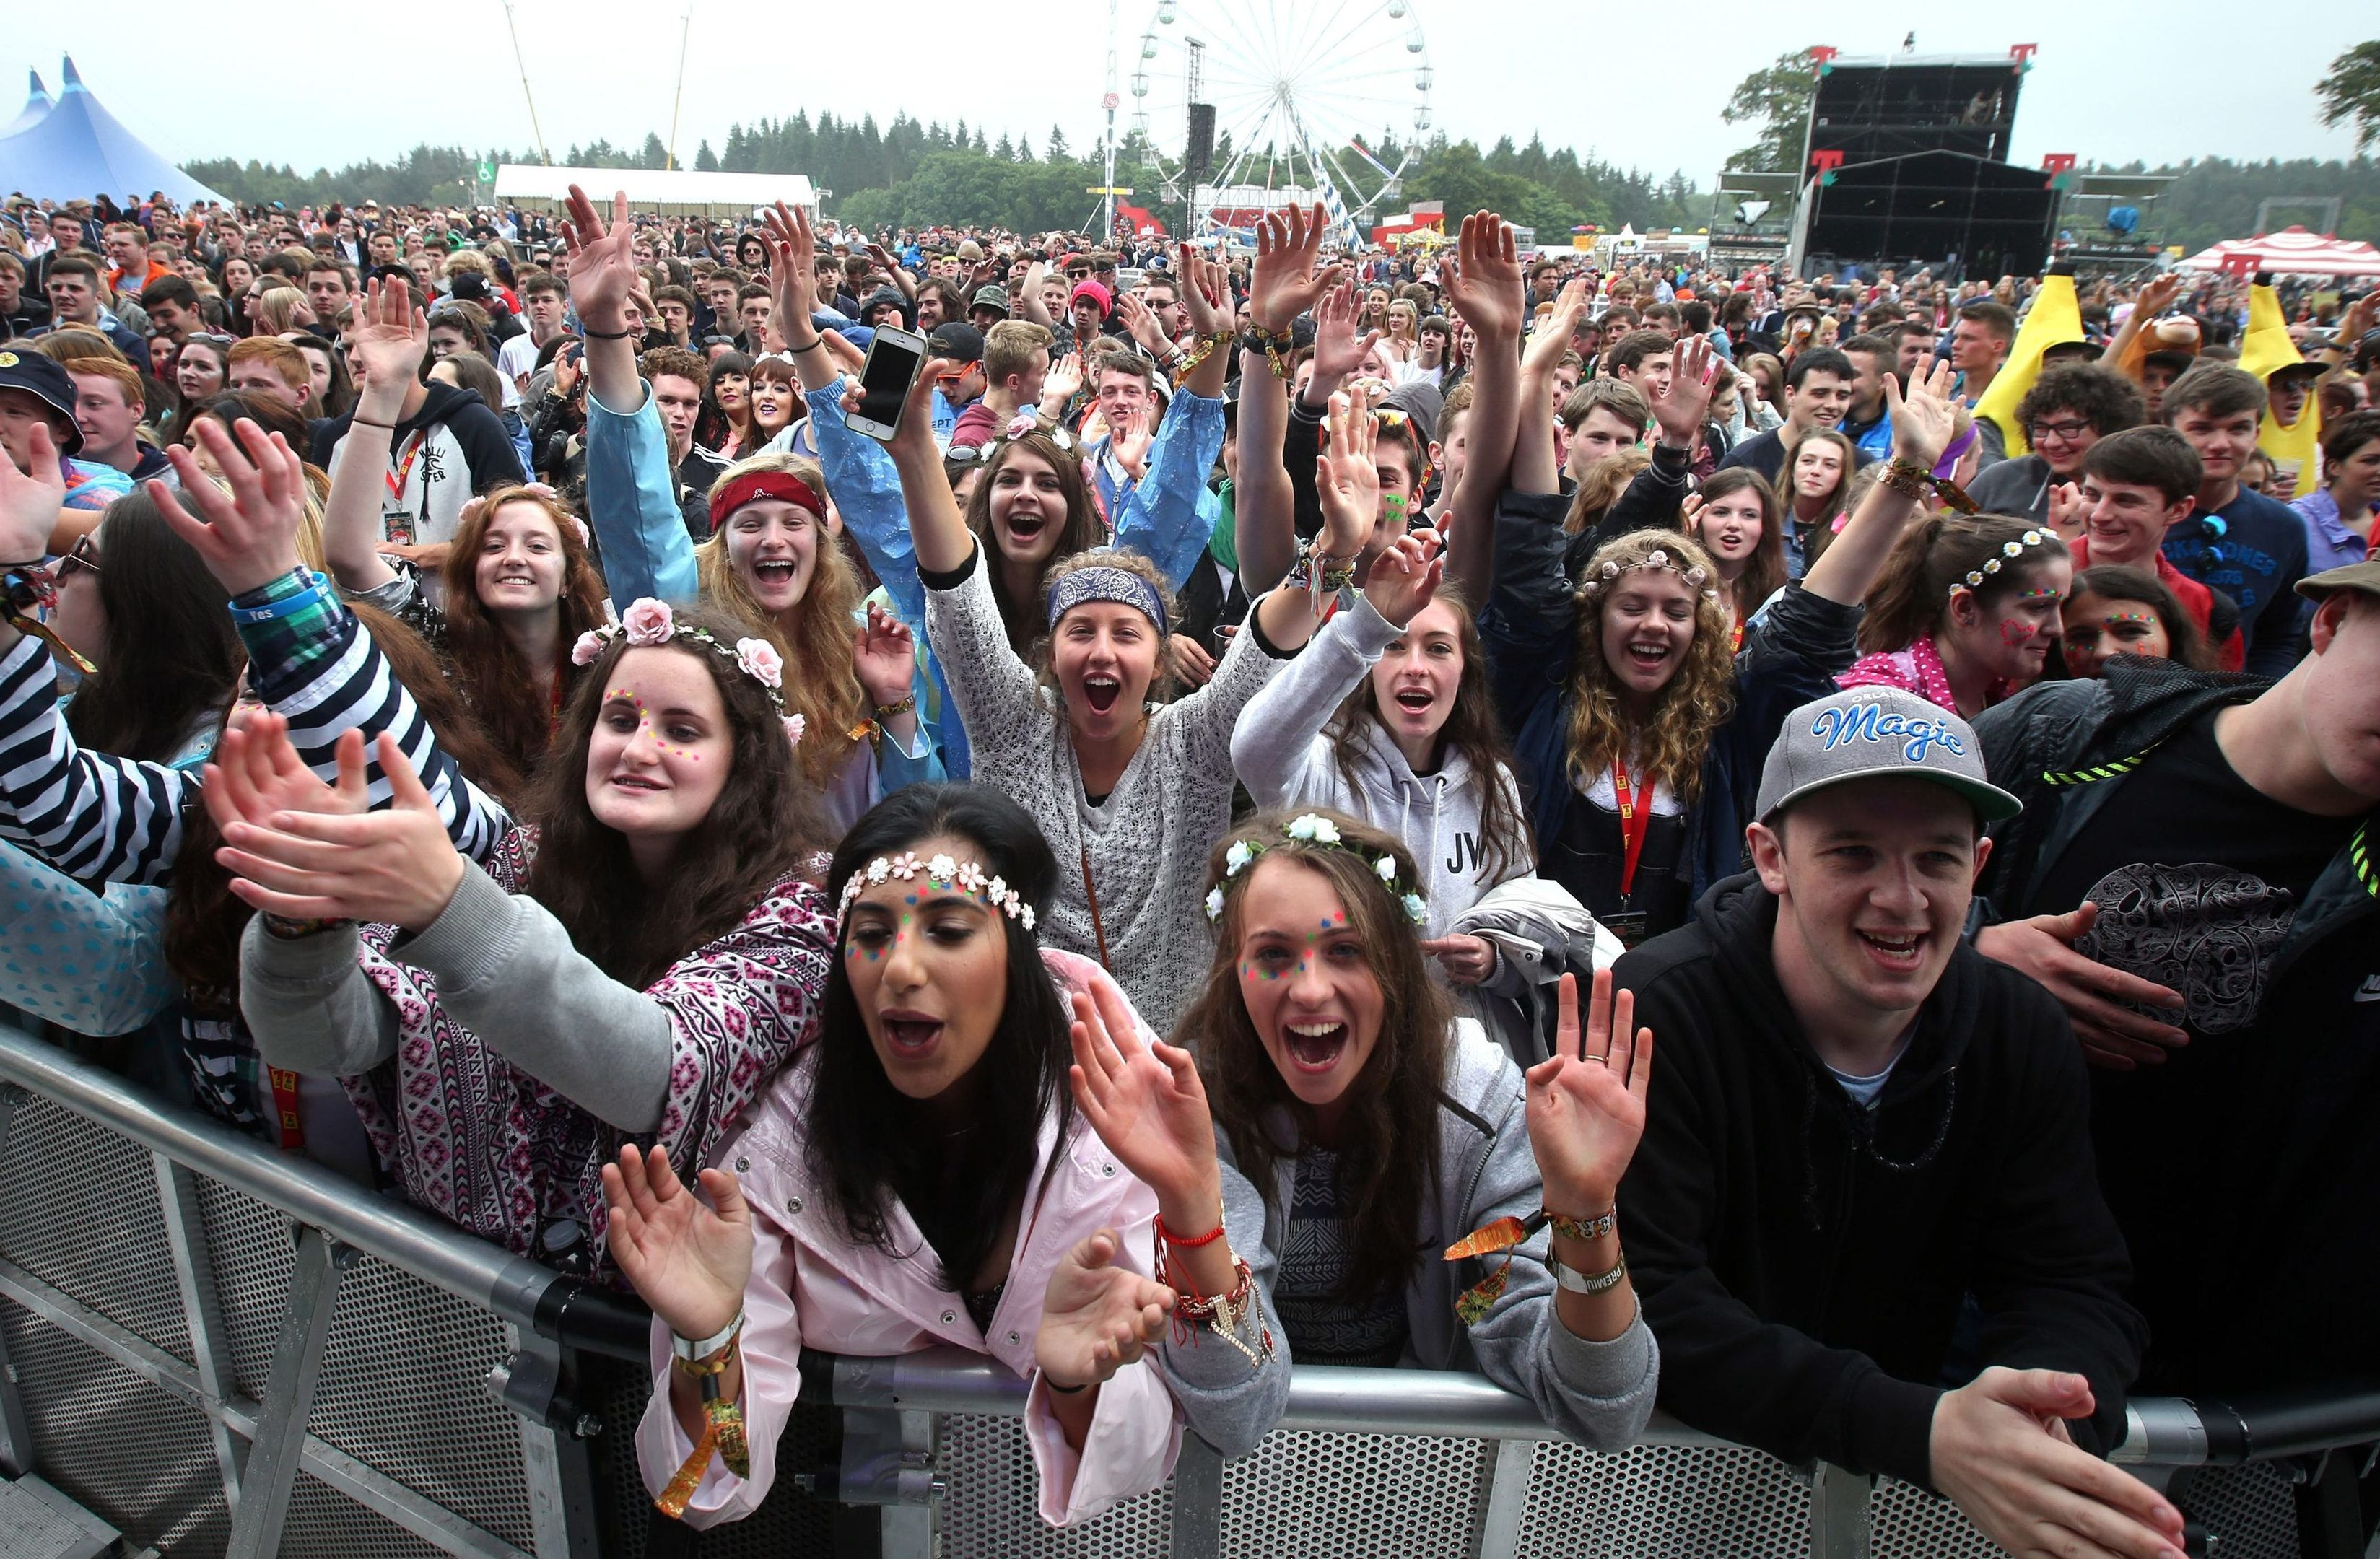 Scenes not to be repeated? Music fans at the main stage at the T in the park music Festival at Strathallan.